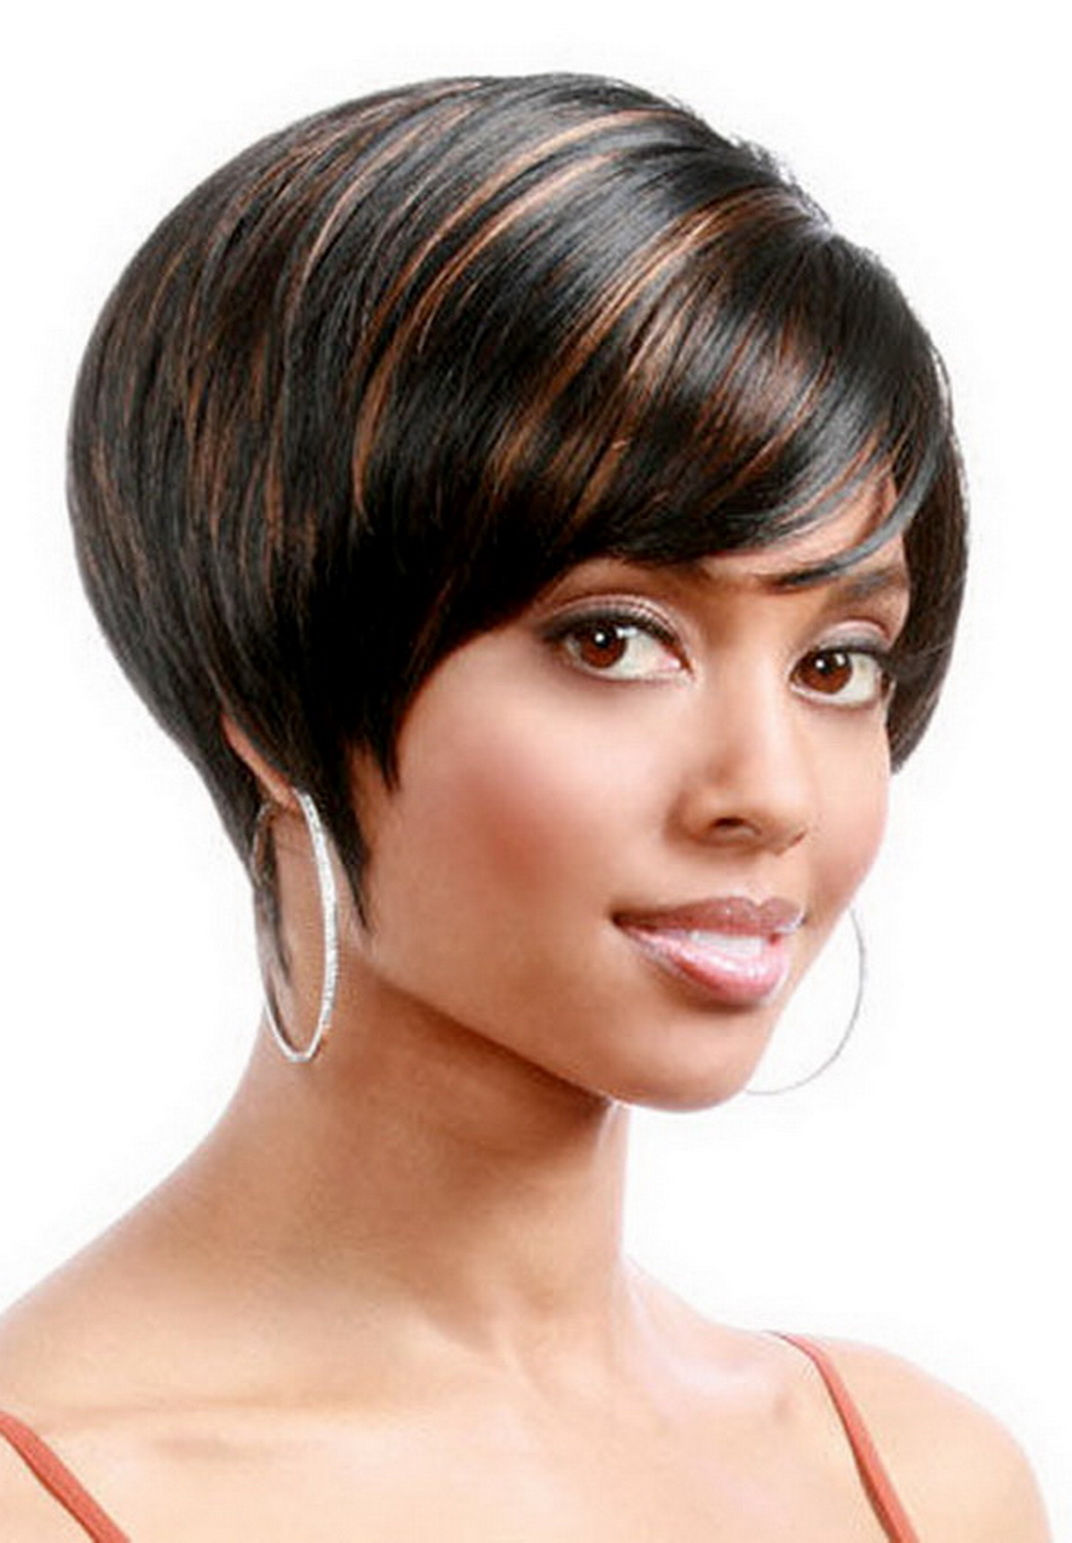 Short Hairstyles For Black Women - Sexy Natural Haircuts.